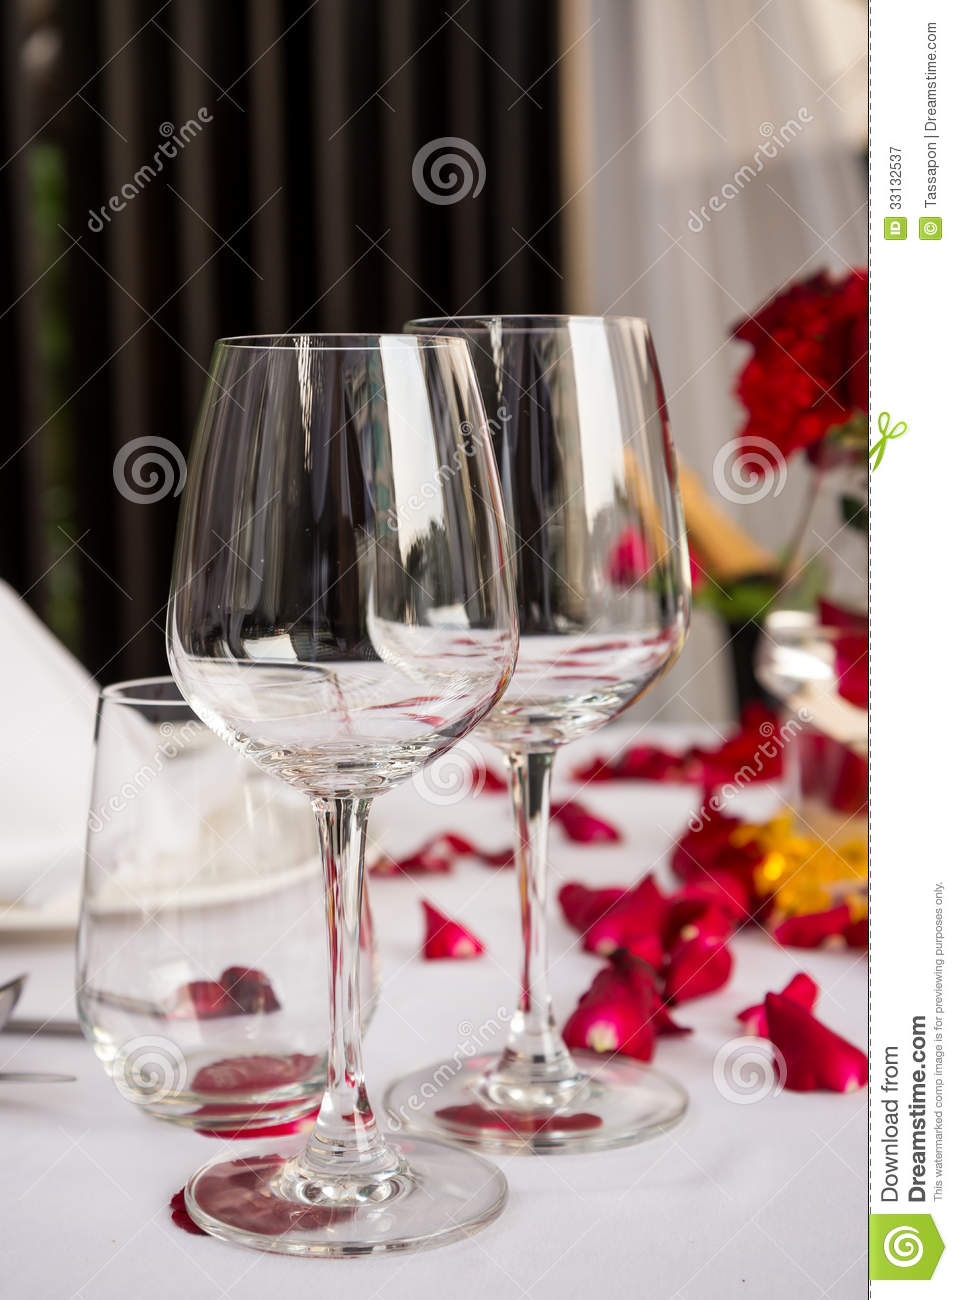 Wine Glass Table Set With Rose Petals Decorations Stock